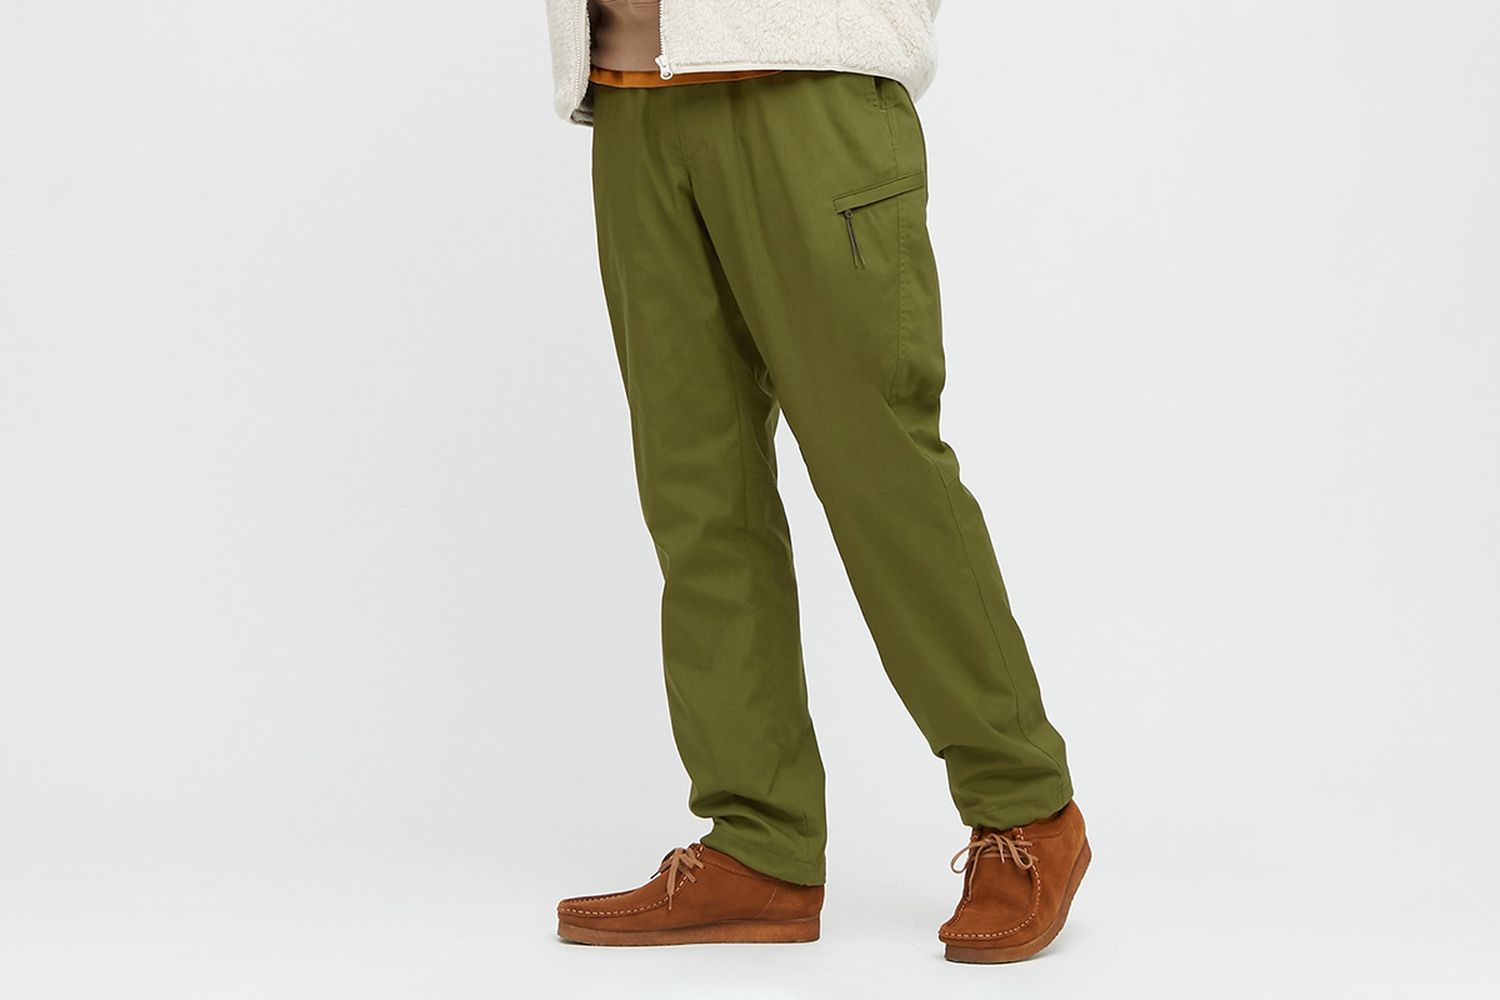 Heattech Warm-Lined Pants